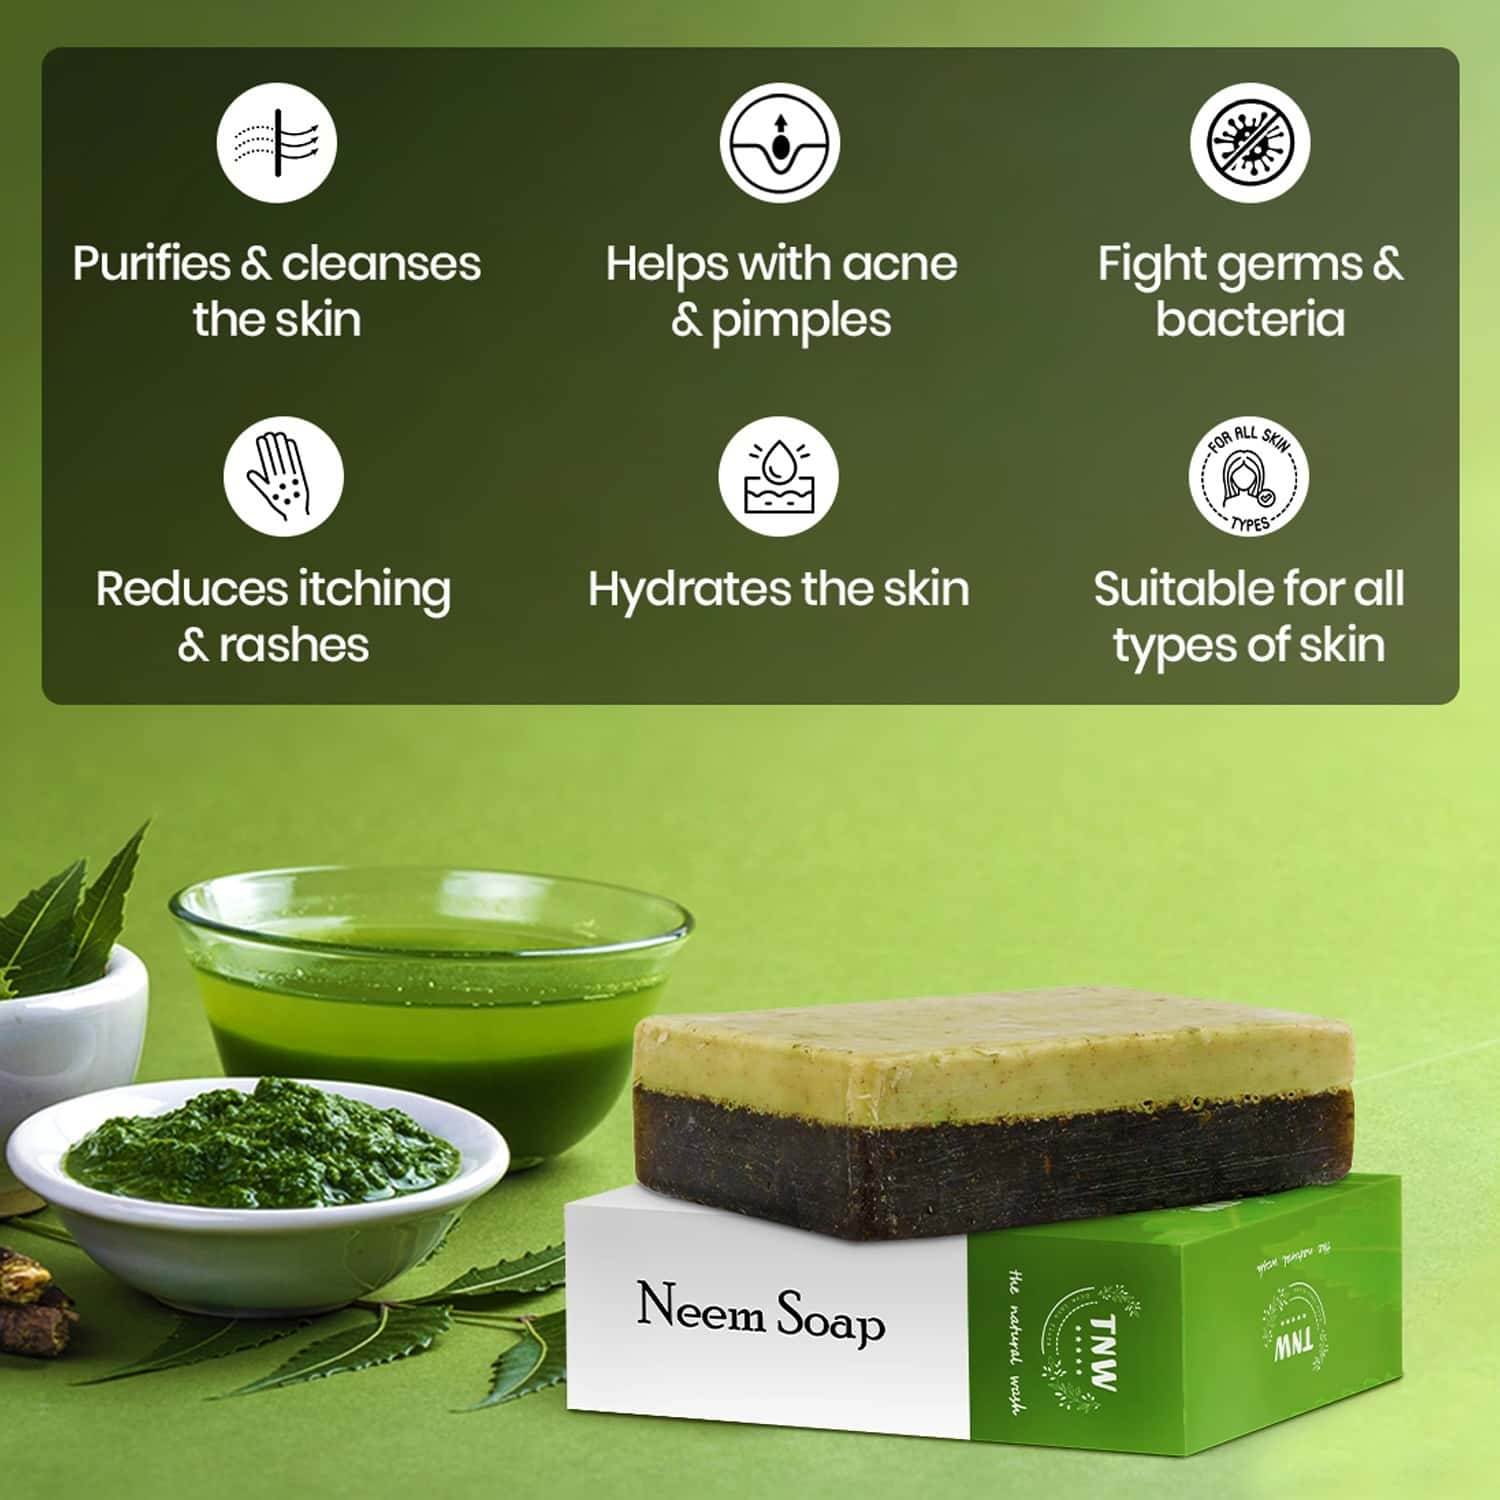 Tnw -the Natural Wash Handmade Purifying Neem Soap For Acne And Rashes - 100 Gm